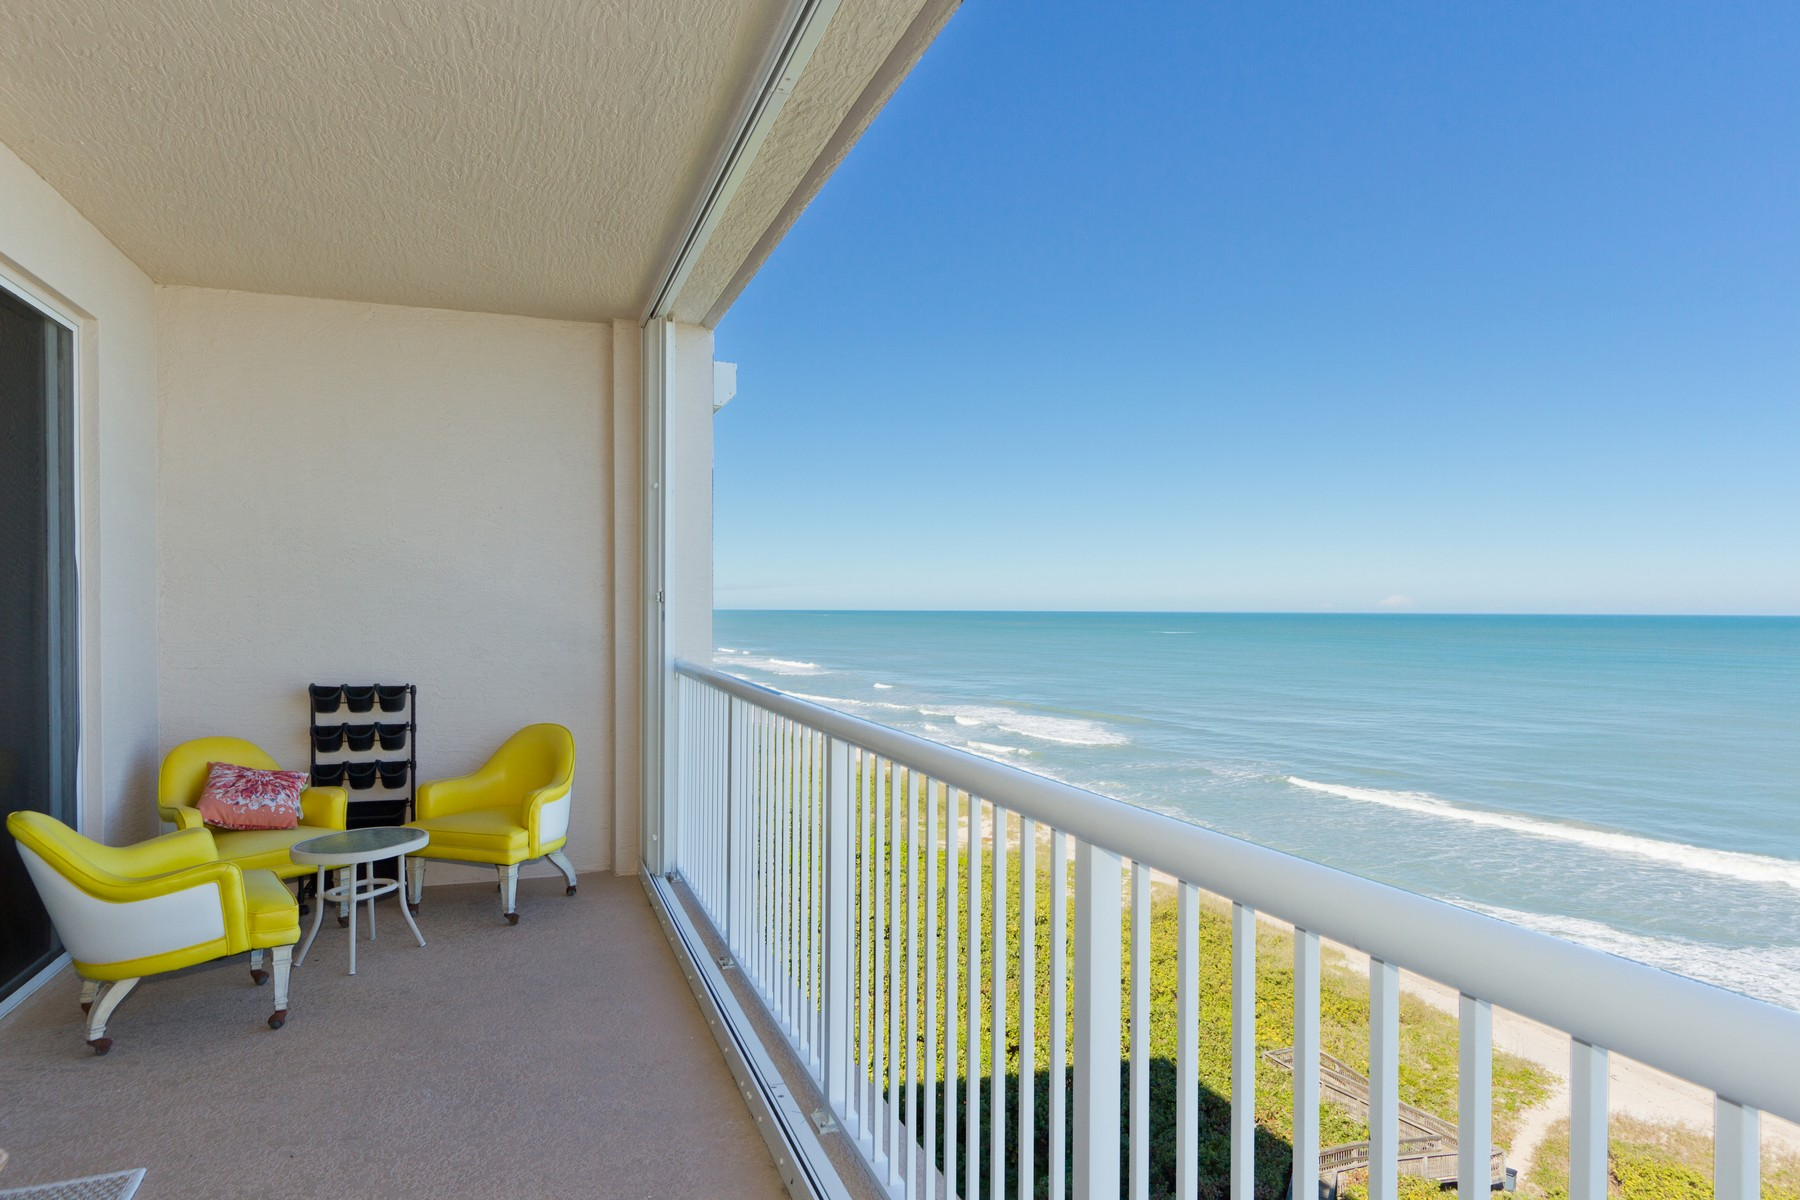 Roomy Beachfront Condo in Oceanique 4160 N Highway A1A Unit #902A Hutchinson Island, Florida 34949 Estados Unidos